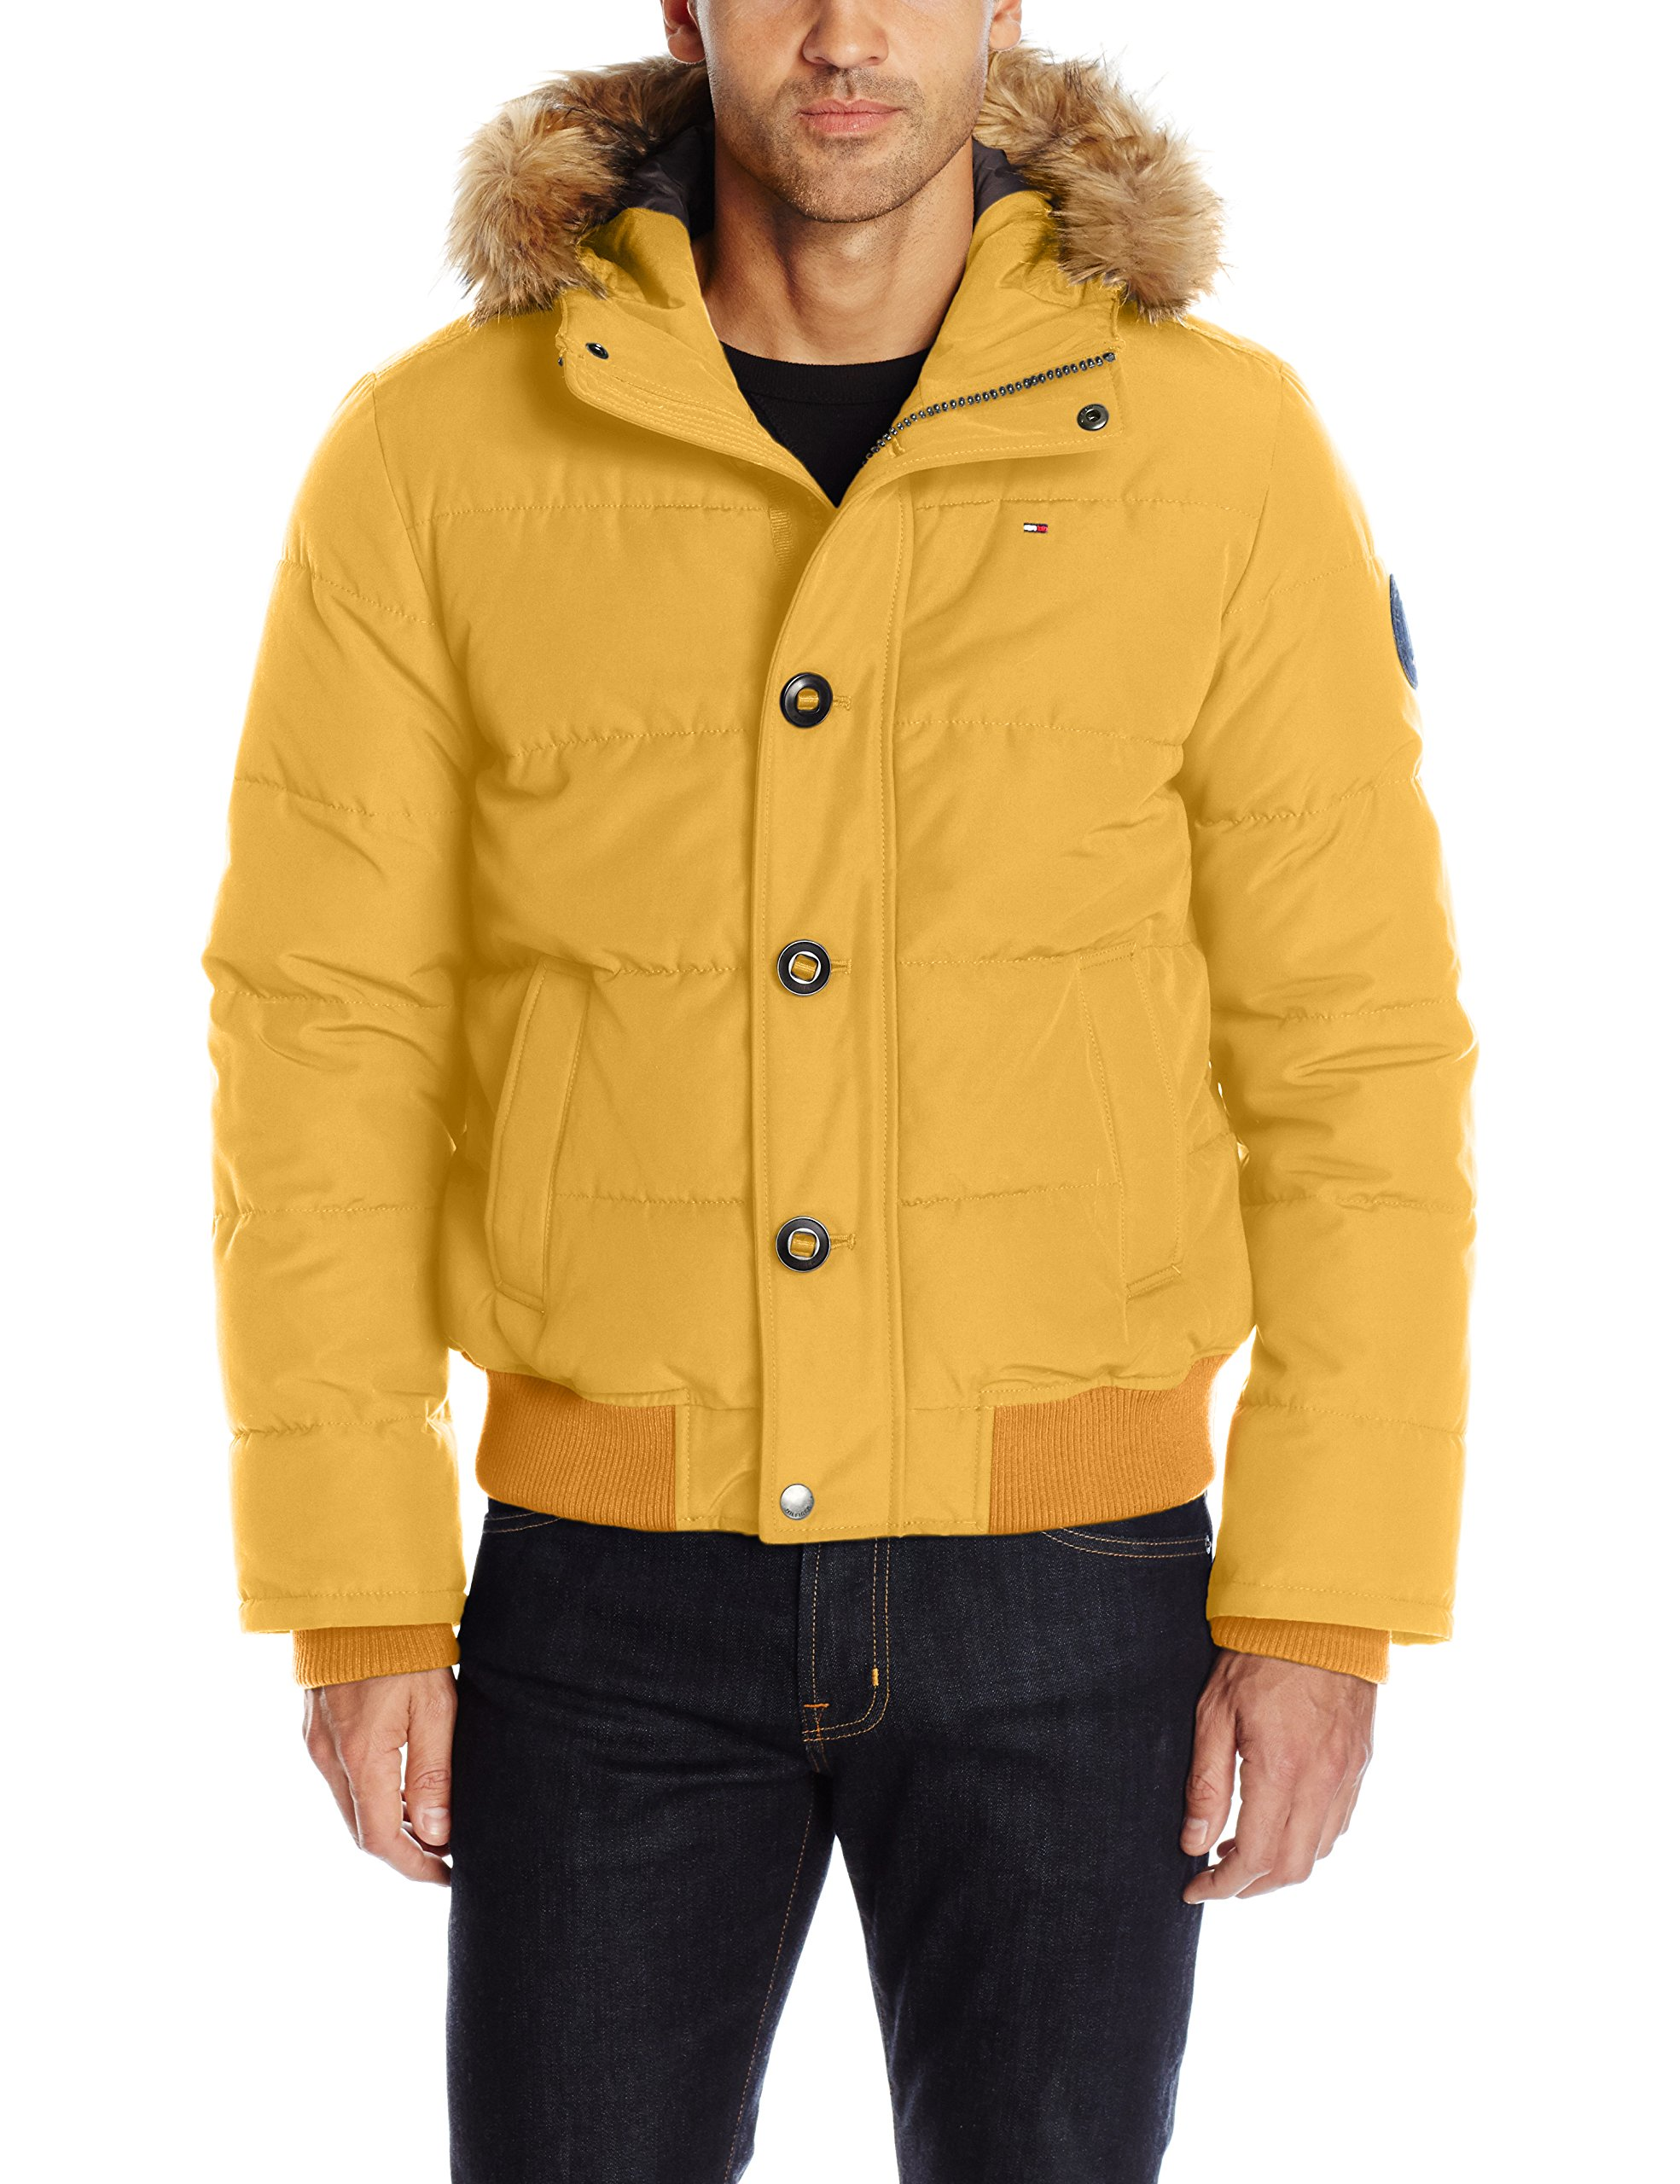 Tommy Hilfiger Men's Arctic Cloth Quilted Snorkel Bomber with Removable Faux Fur Trimmed Hood, Yellow, M